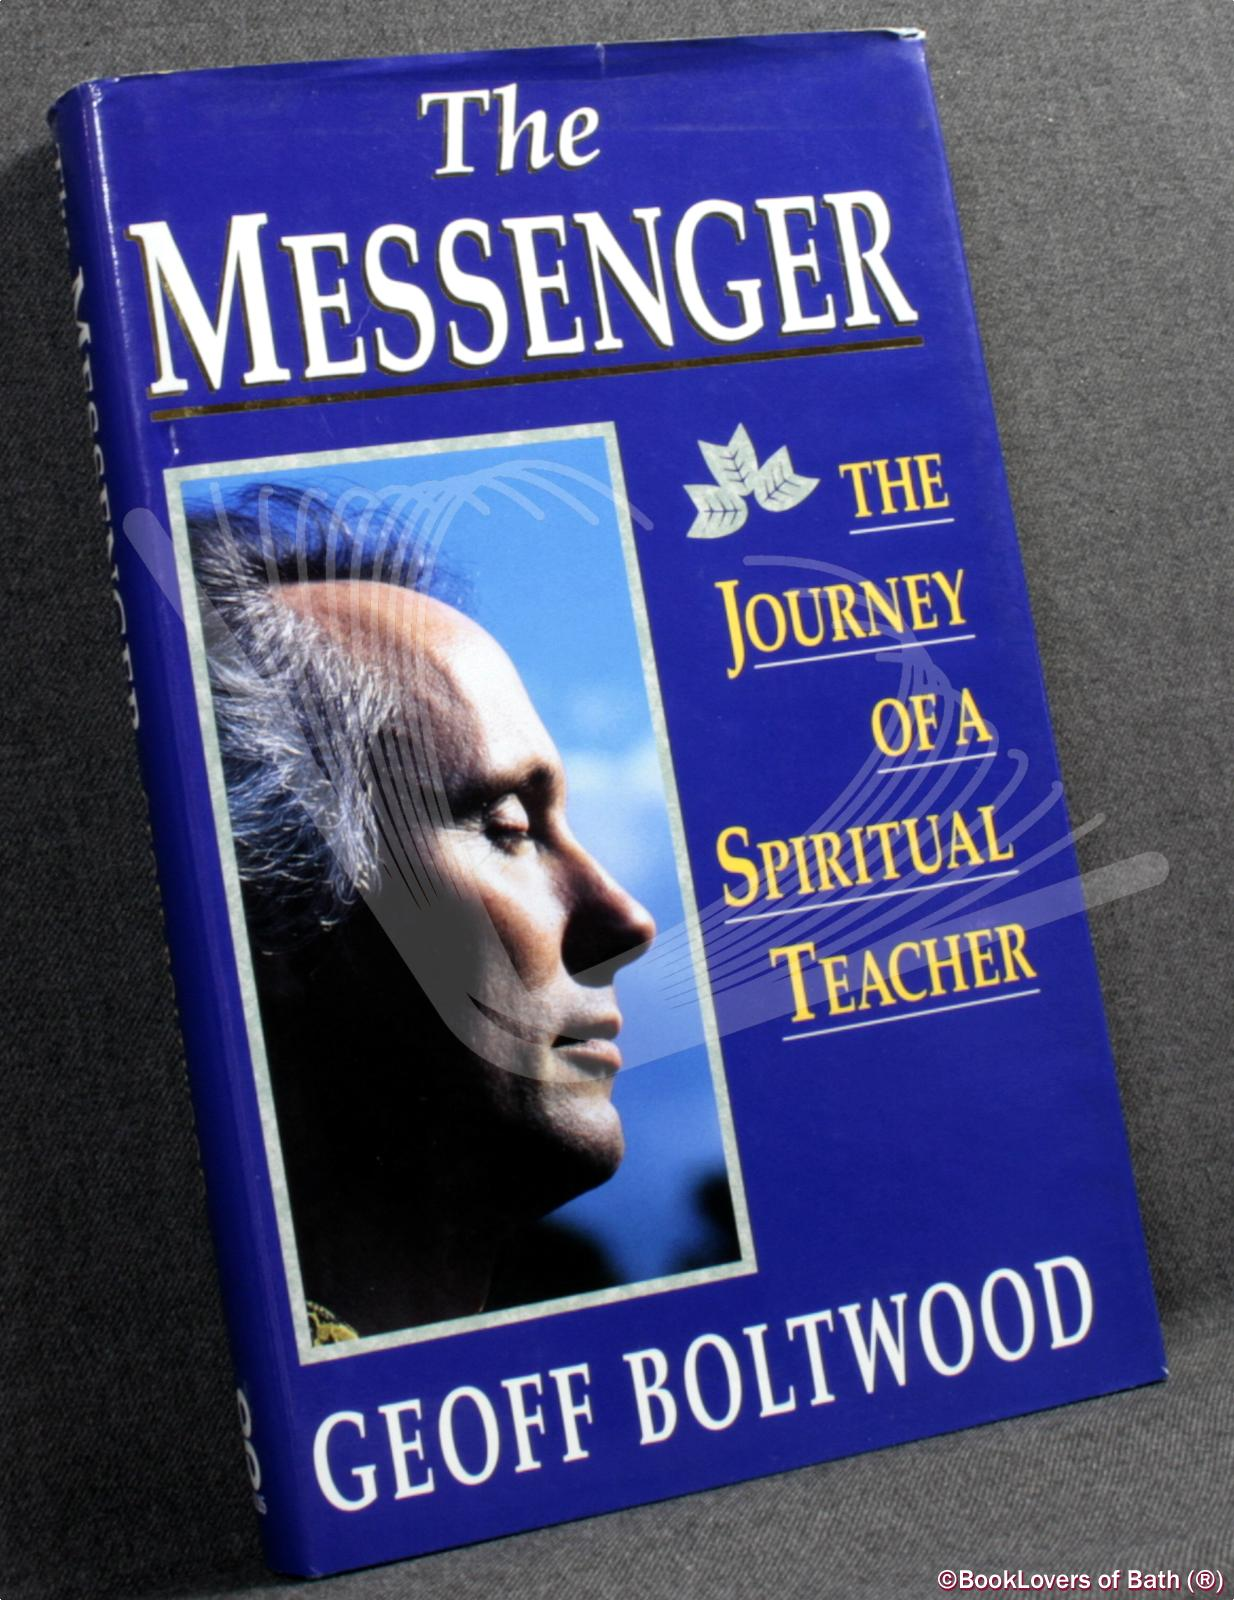 The Messenger: The Journey of a Spiritual Teacher - Geoff Boltwood with Anthea Courtenay